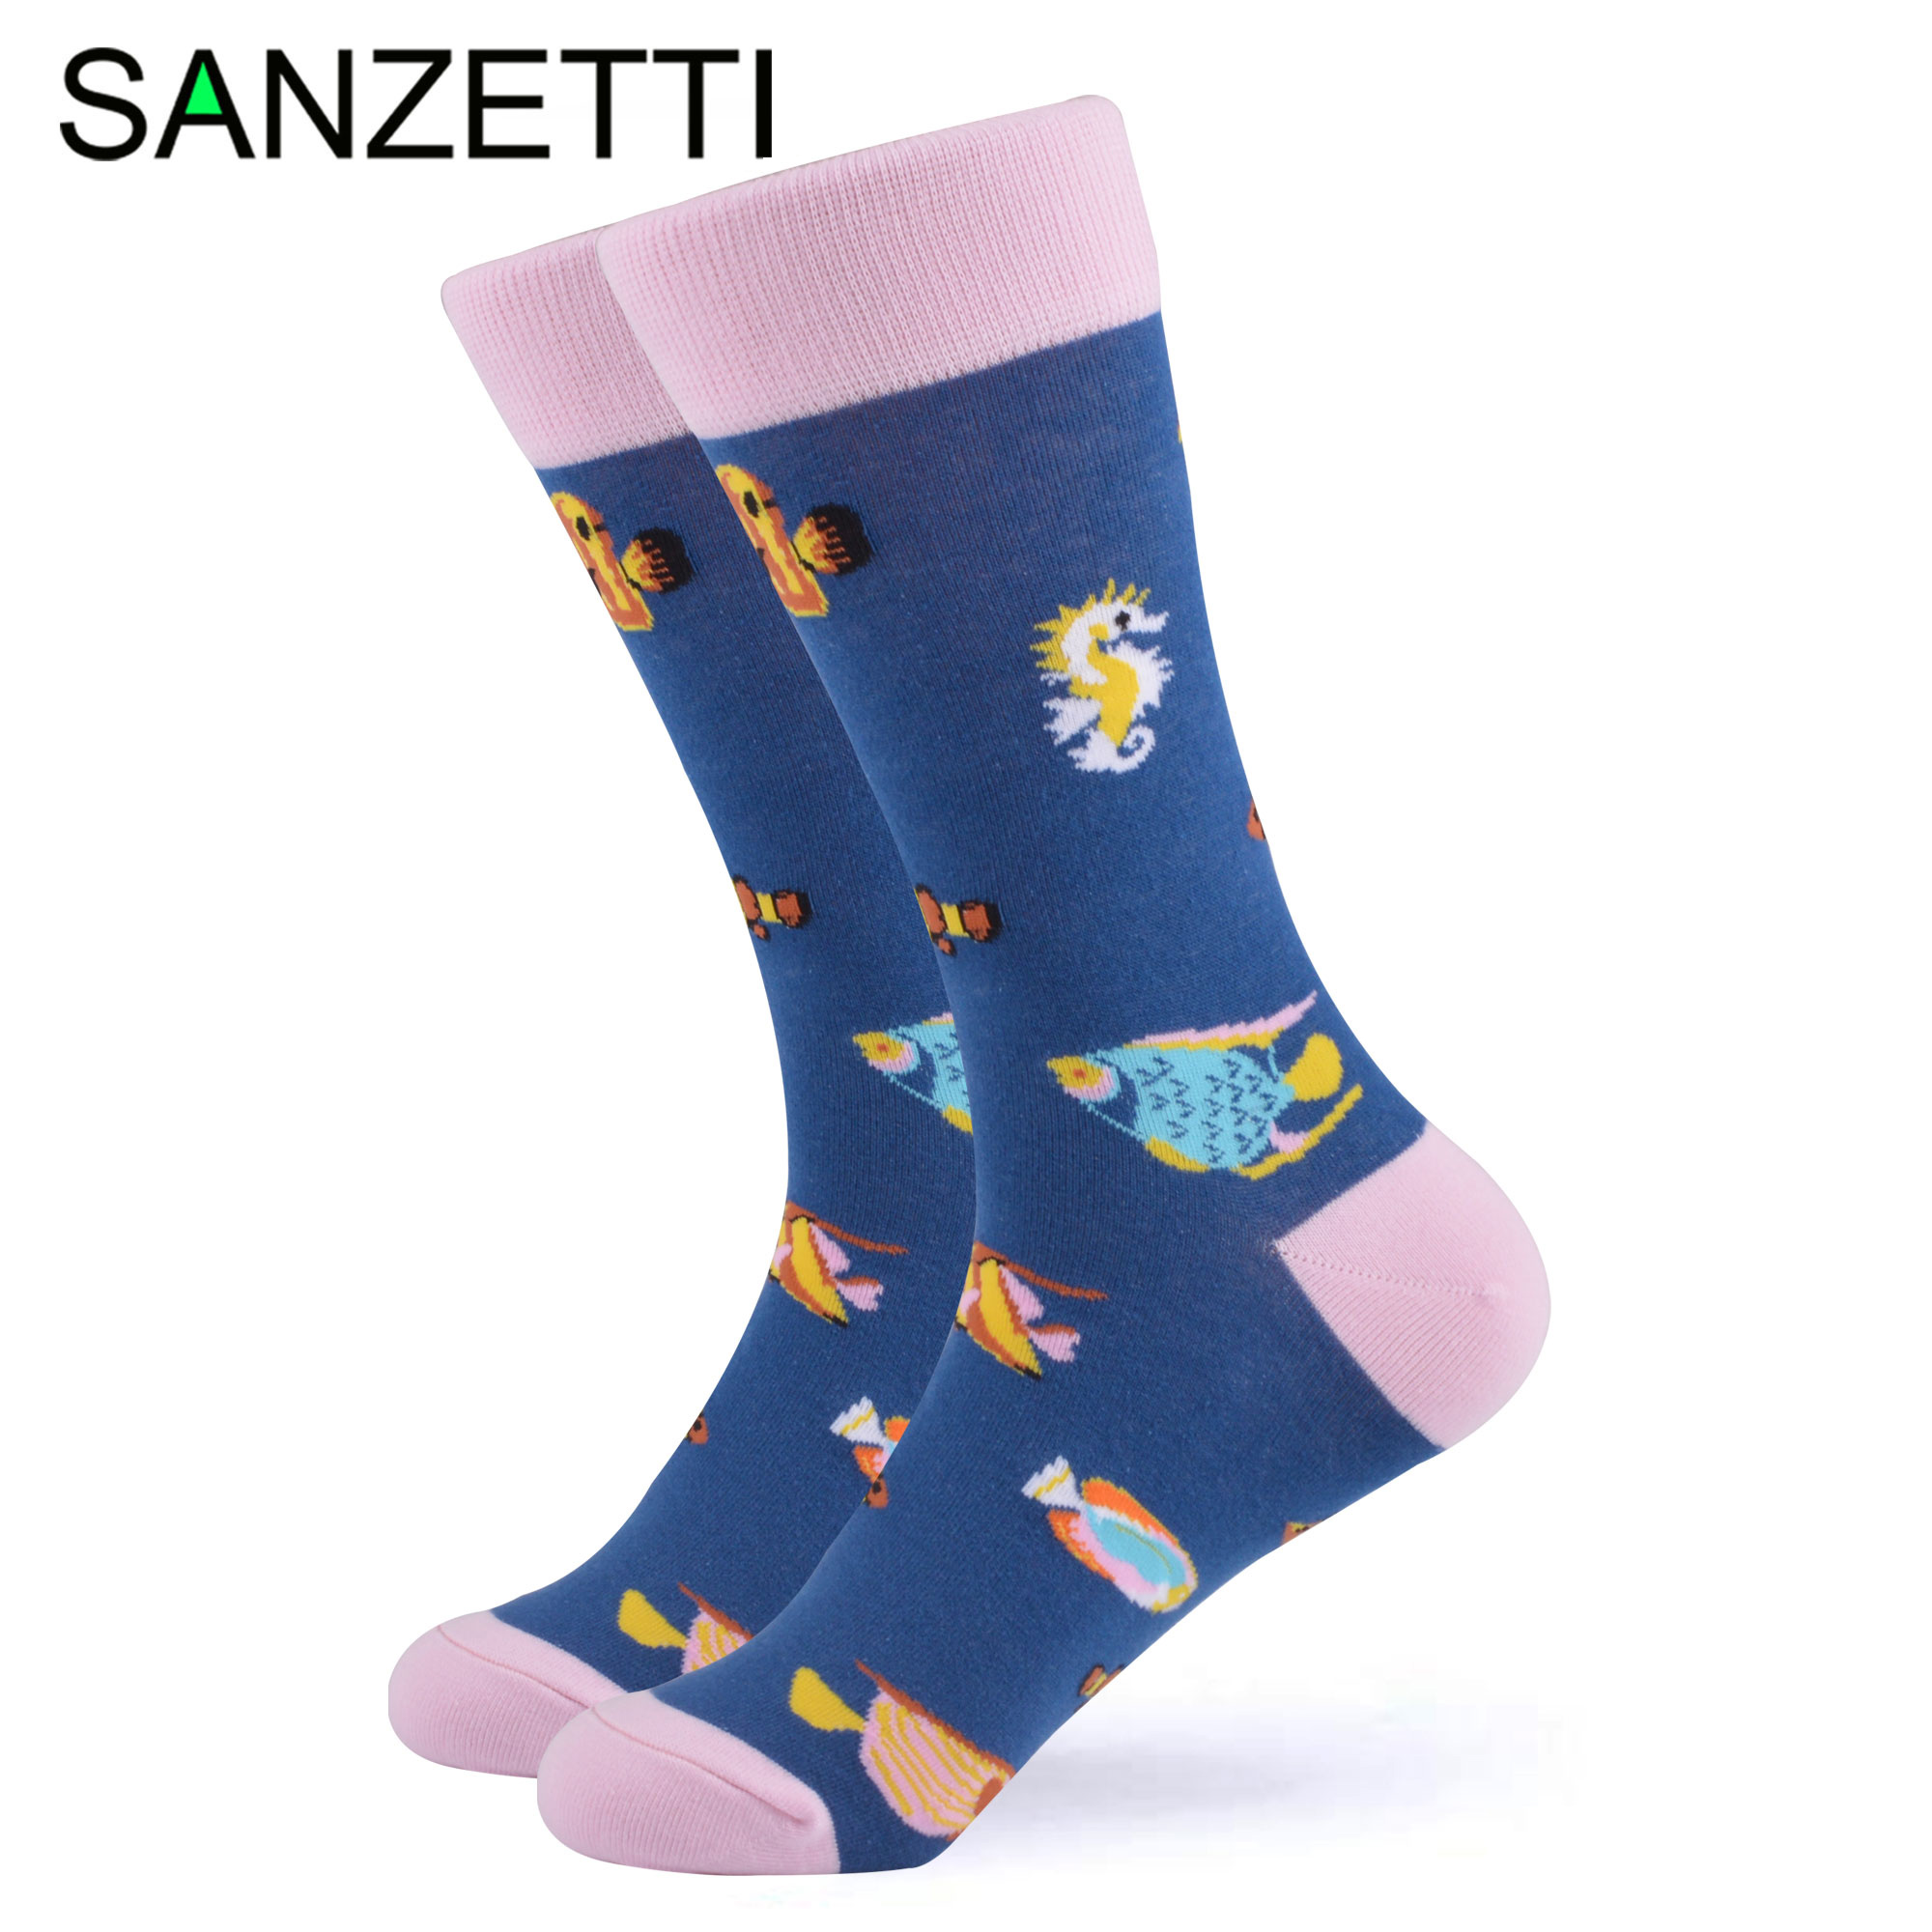 SANZETTI 1 Pair Colorful Bright Women Socks Novelty Combed Cotton Cute Party Cake Animal Pattern Gifts Wedding Dress Happy Socks